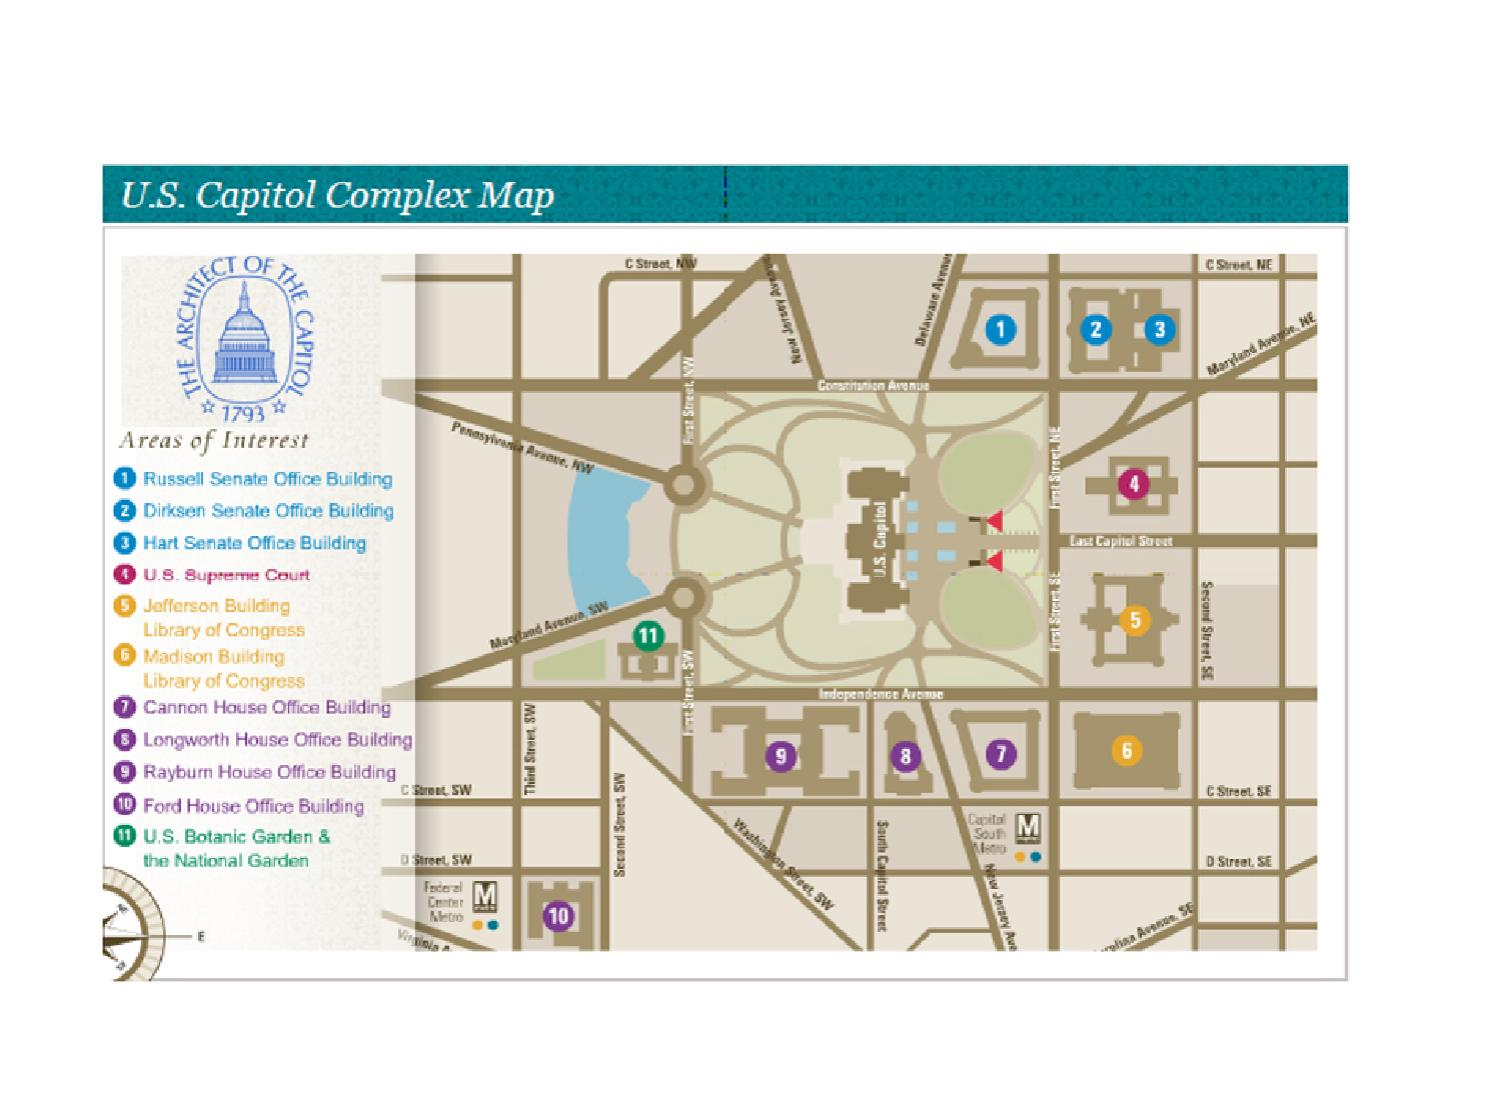 US Capitol Complex Map by Association for Unmanned Vehicle